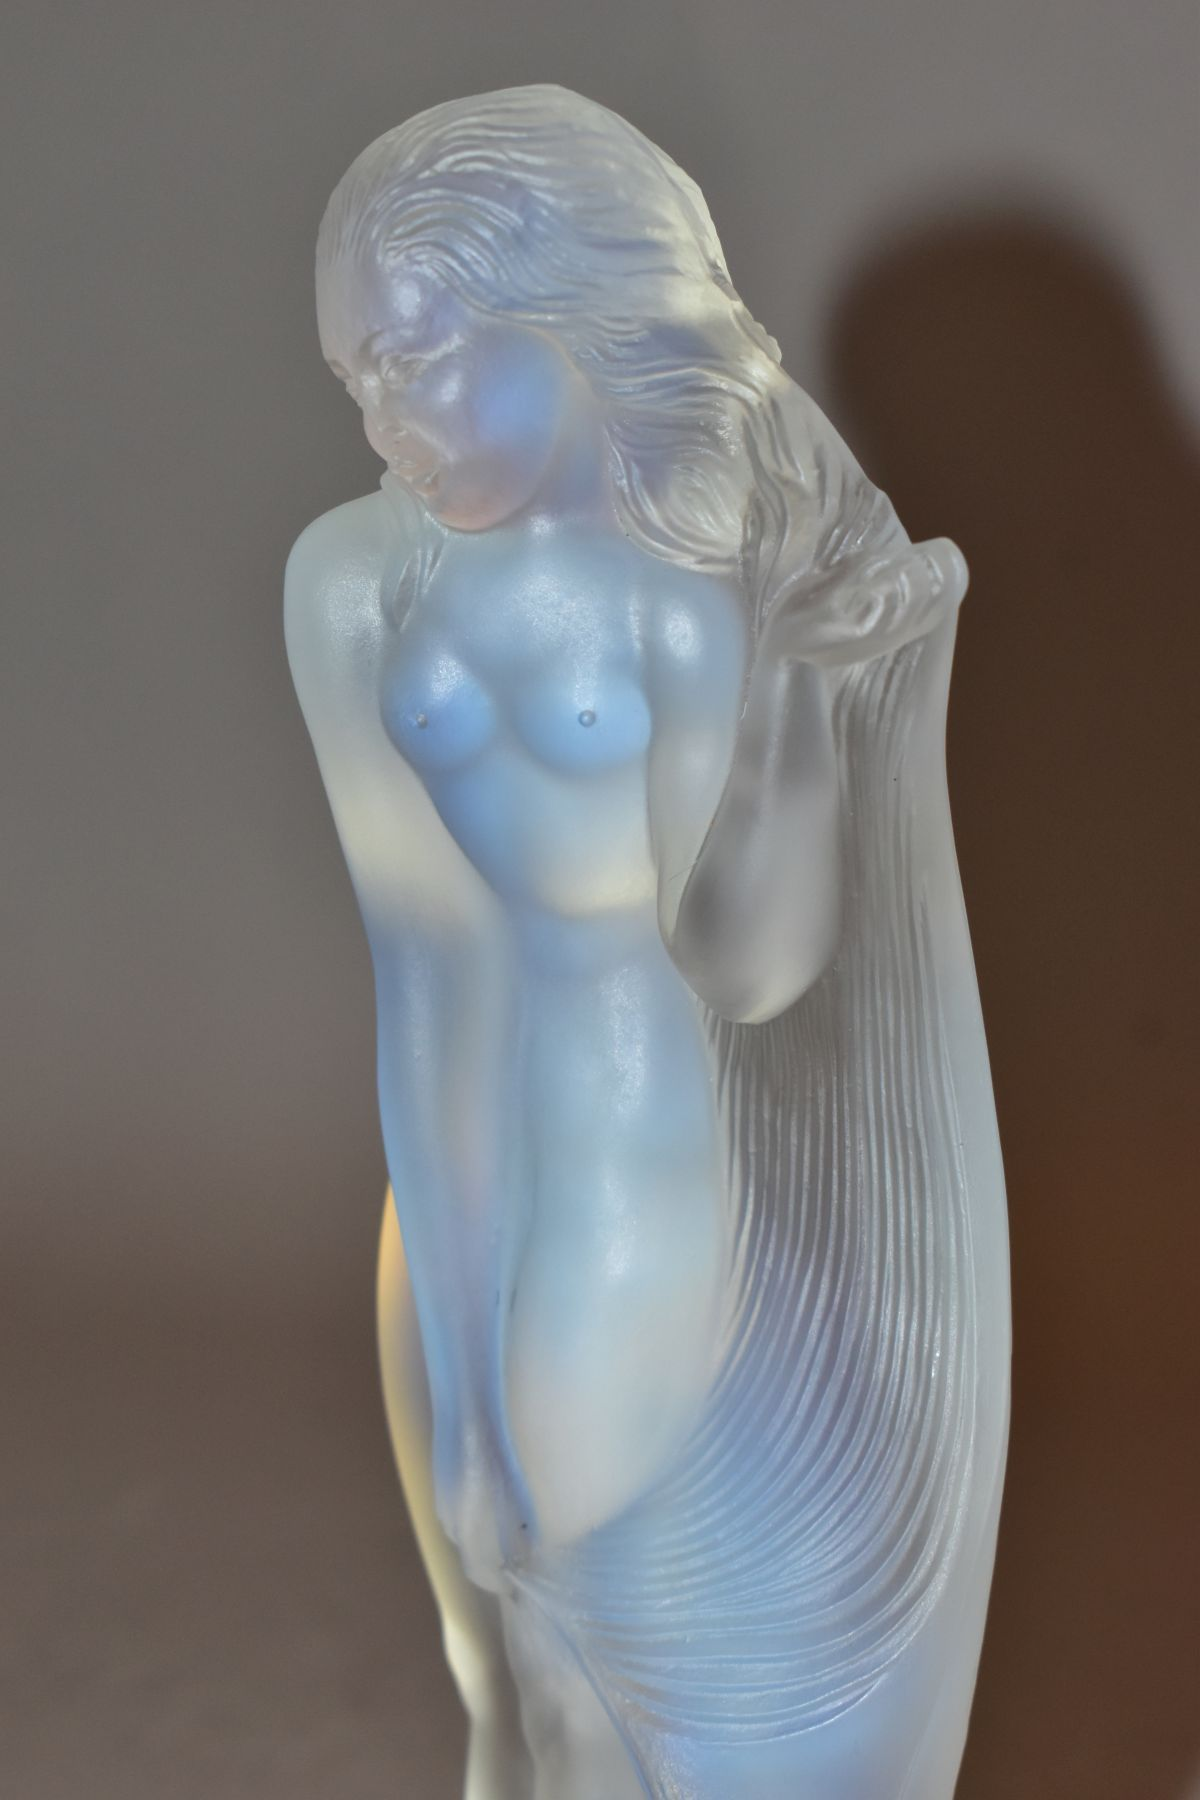 LUCILLE SEVIN - ETLING, an Art Deco style opalescent glass figure of a female nude with long flowing - Image 11 of 14